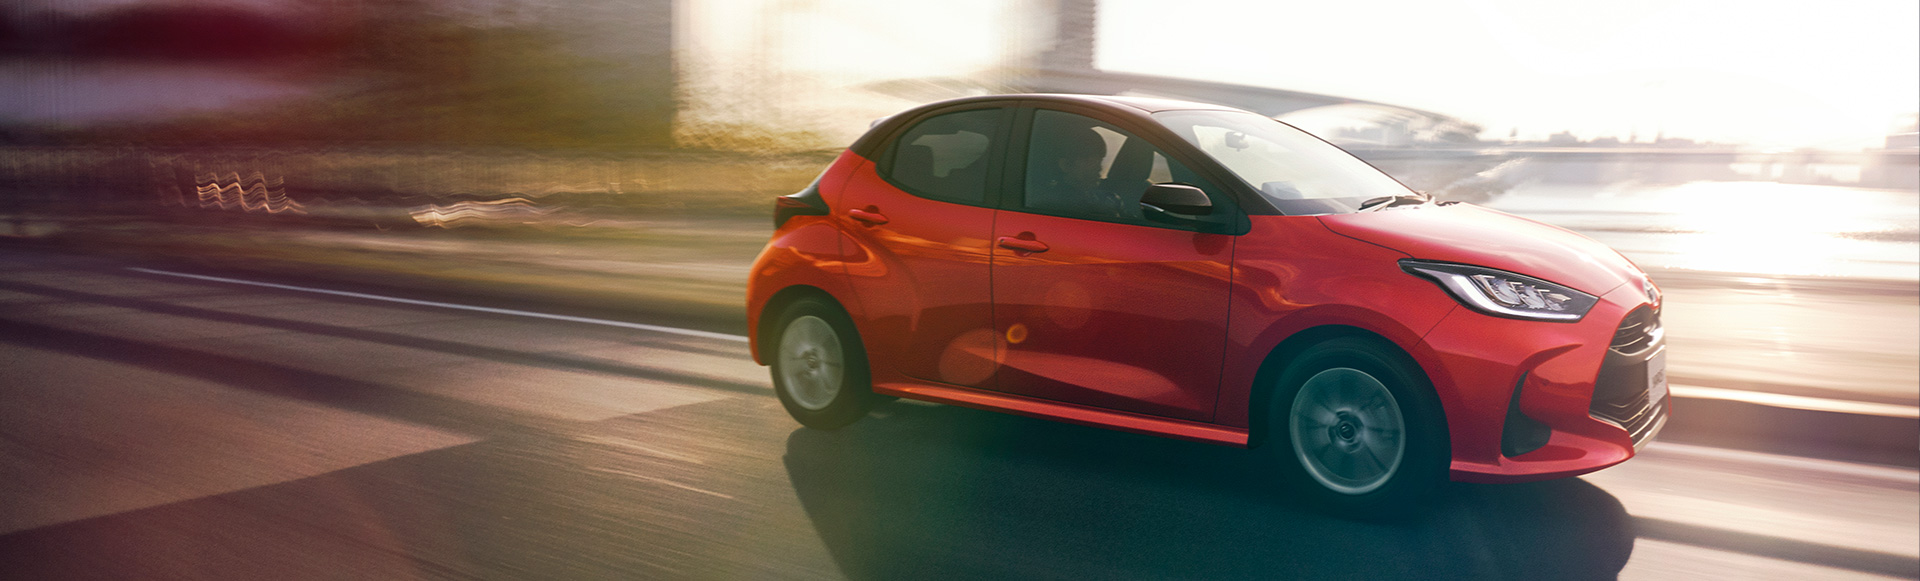 Toyota to Launch New Model Yaris in Japan on February 10, 2020